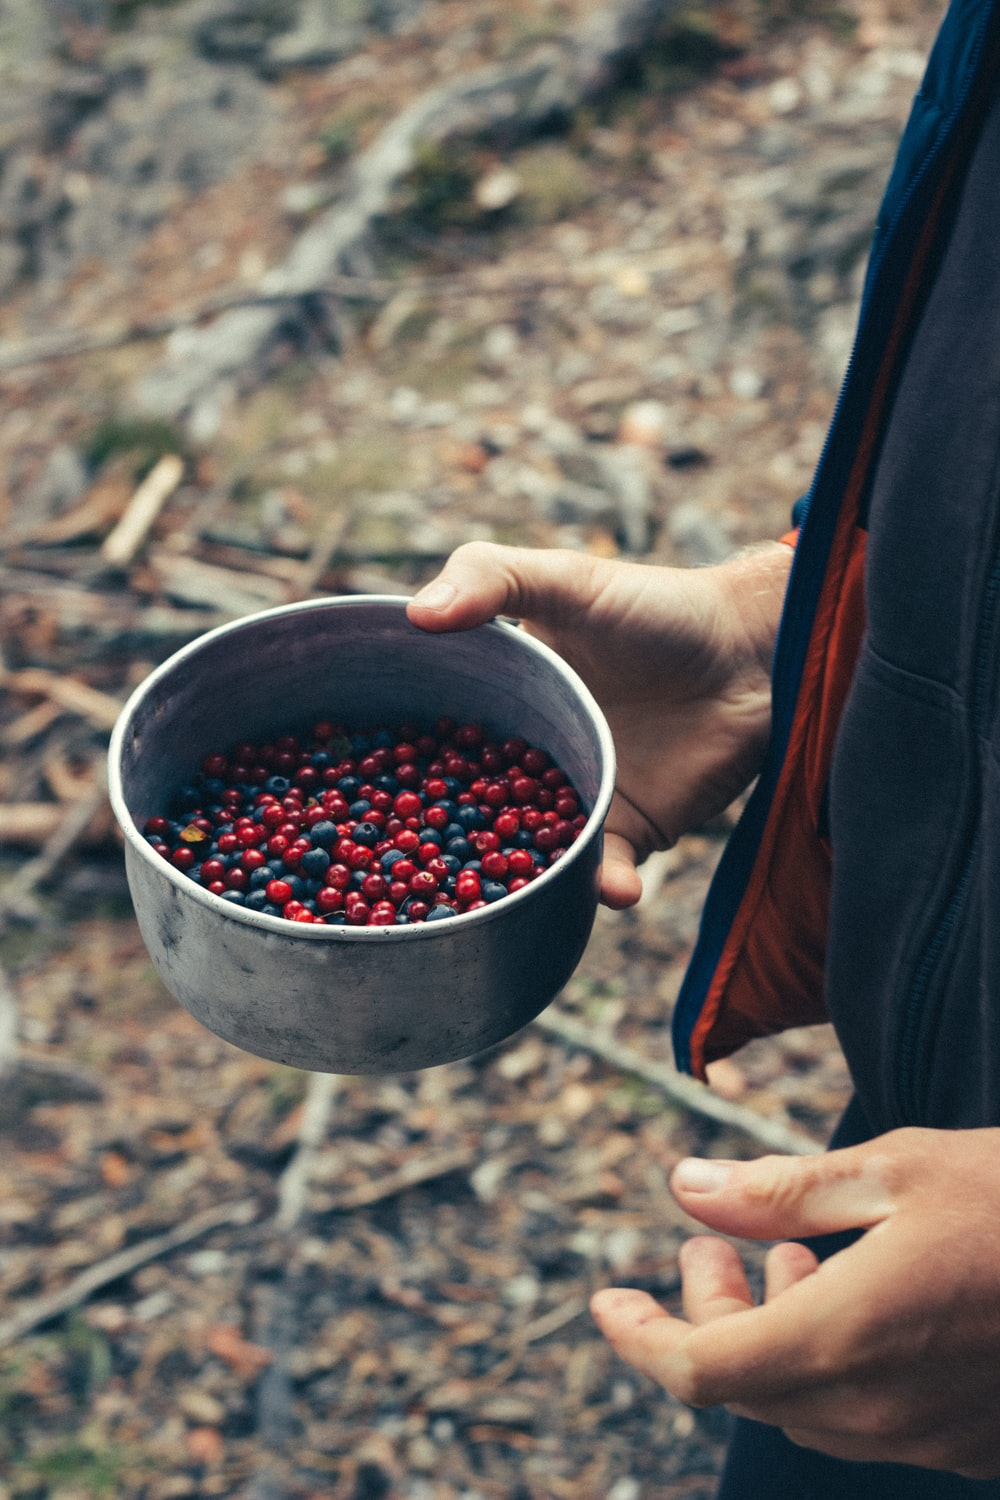 person holding stainless steel cup with red round fruits